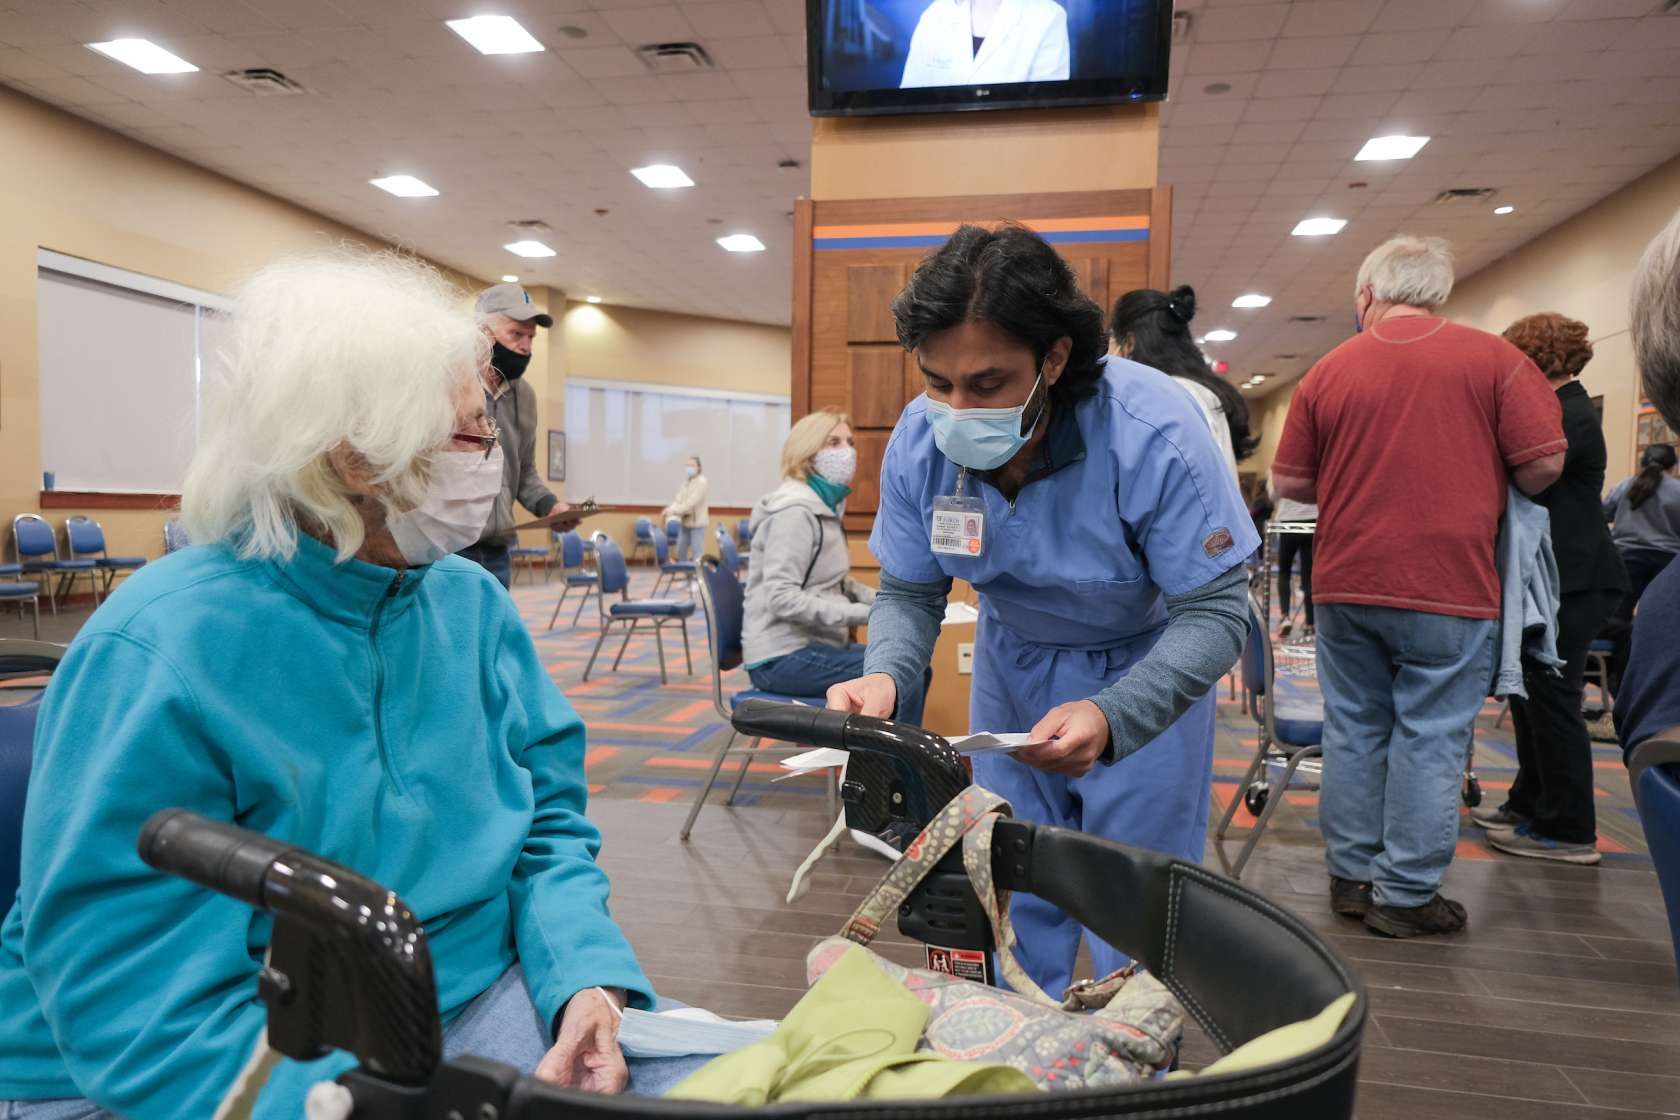 A male health care worker wearing a mask discusses the vaccination with an older woman sitting next to her walker.